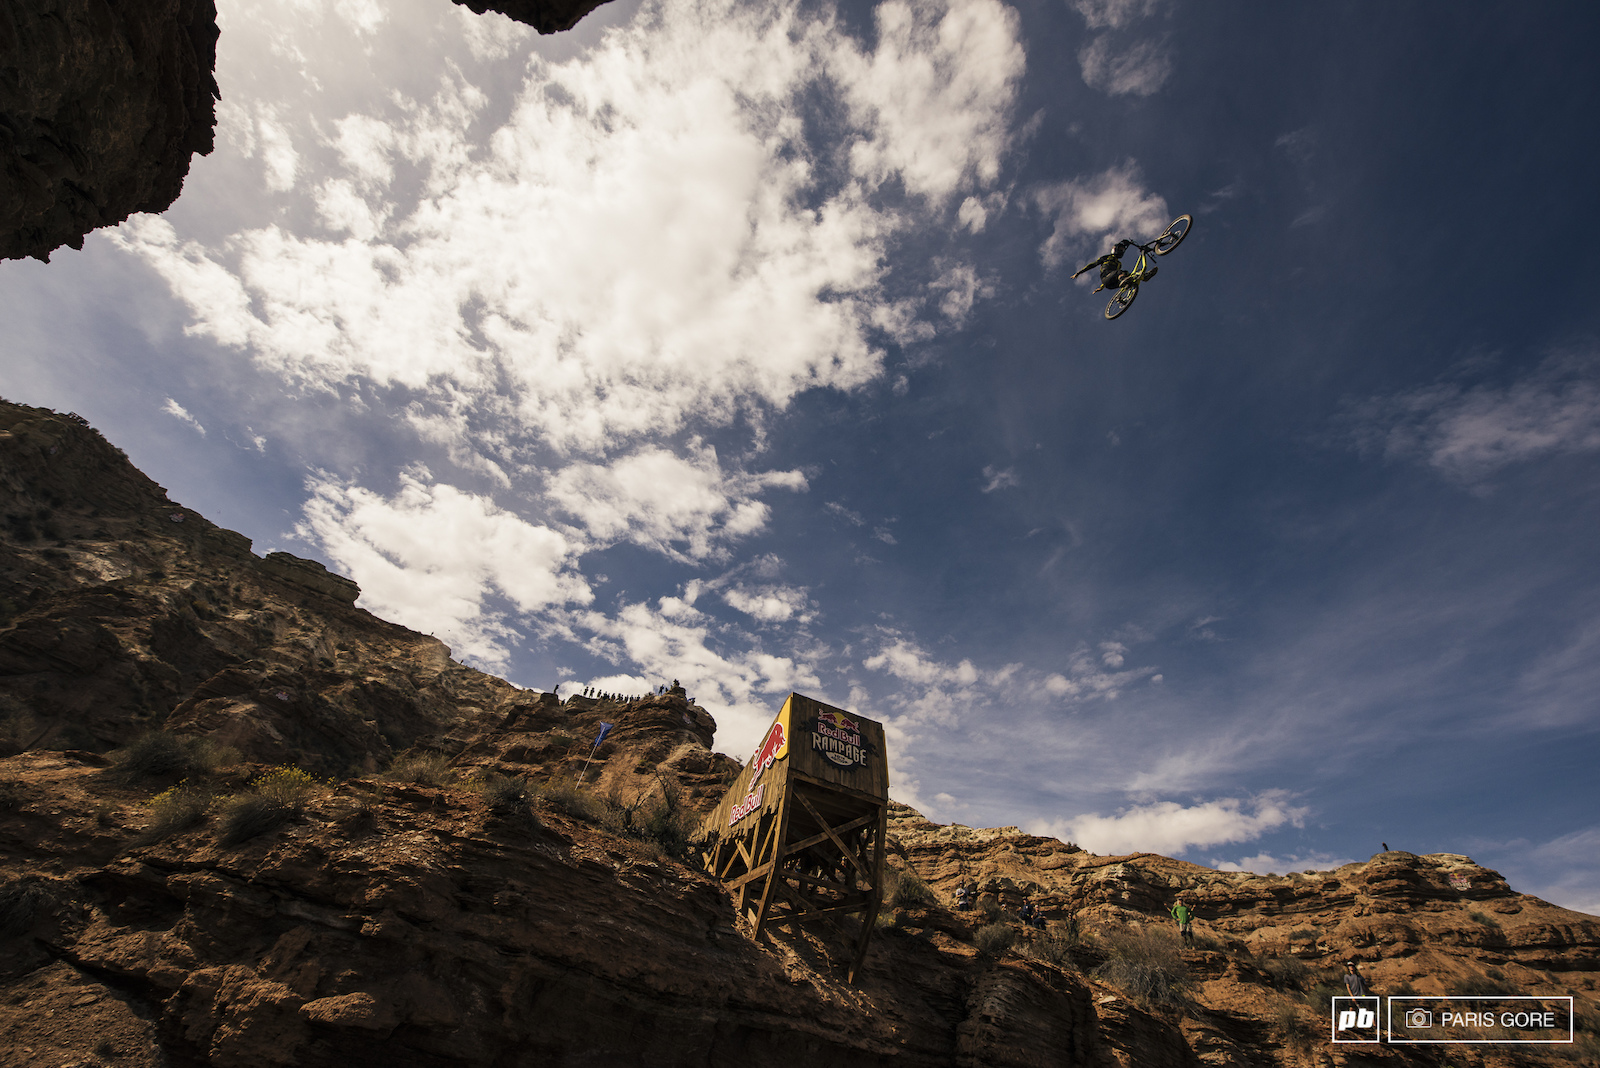 Remy Metailler suicide no hand off the canyon gap.